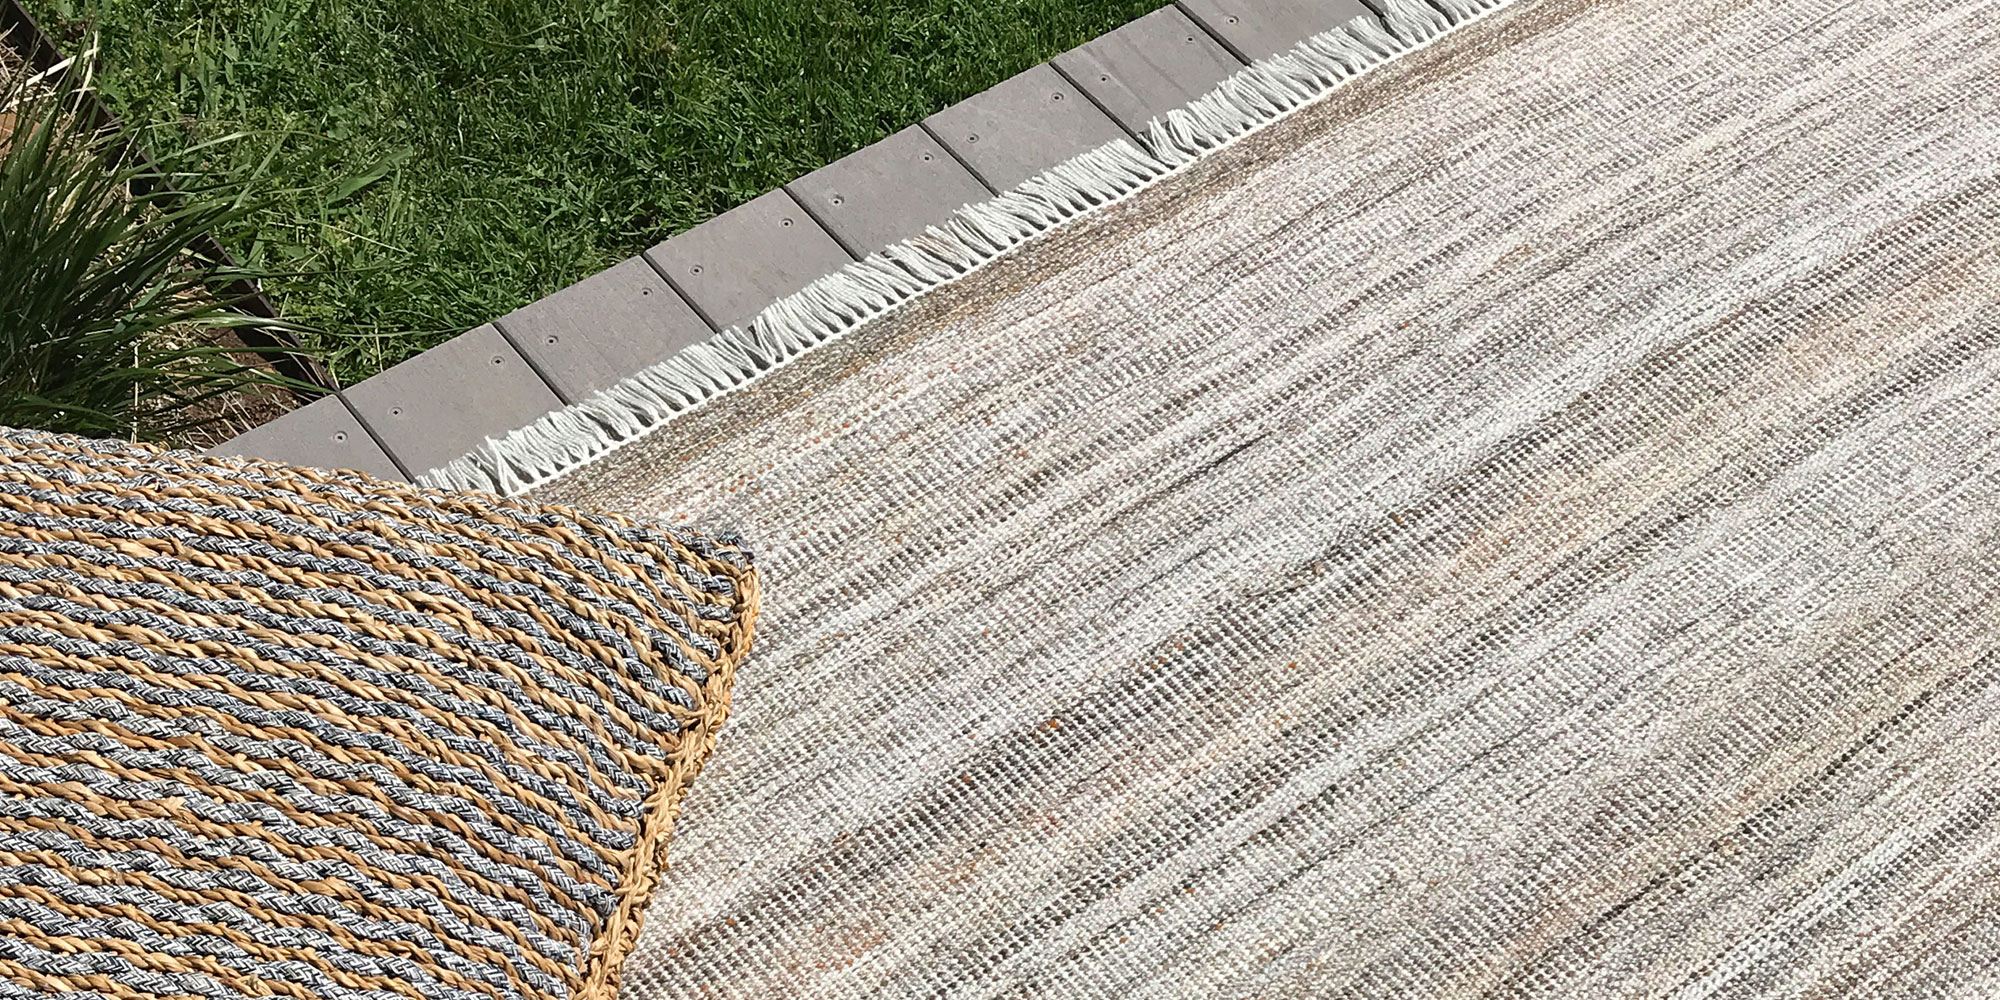 The Colour options of Summer - Part 1 Coolness of Outdoor/Indoor Rugs